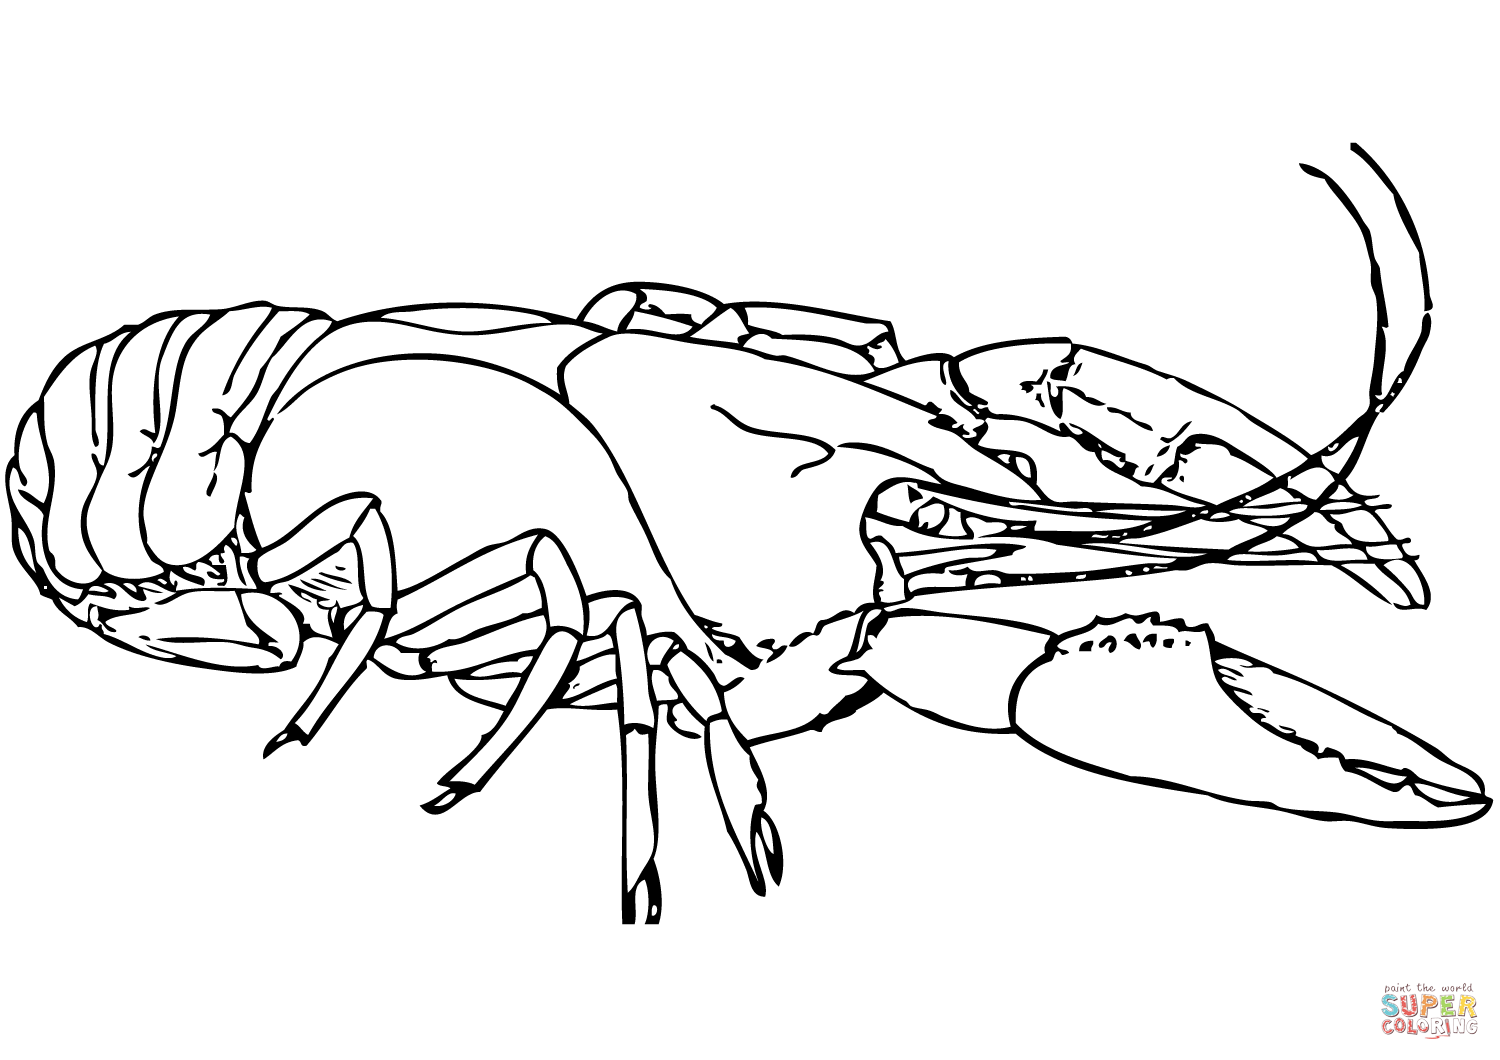 American Lobster Coloring Page